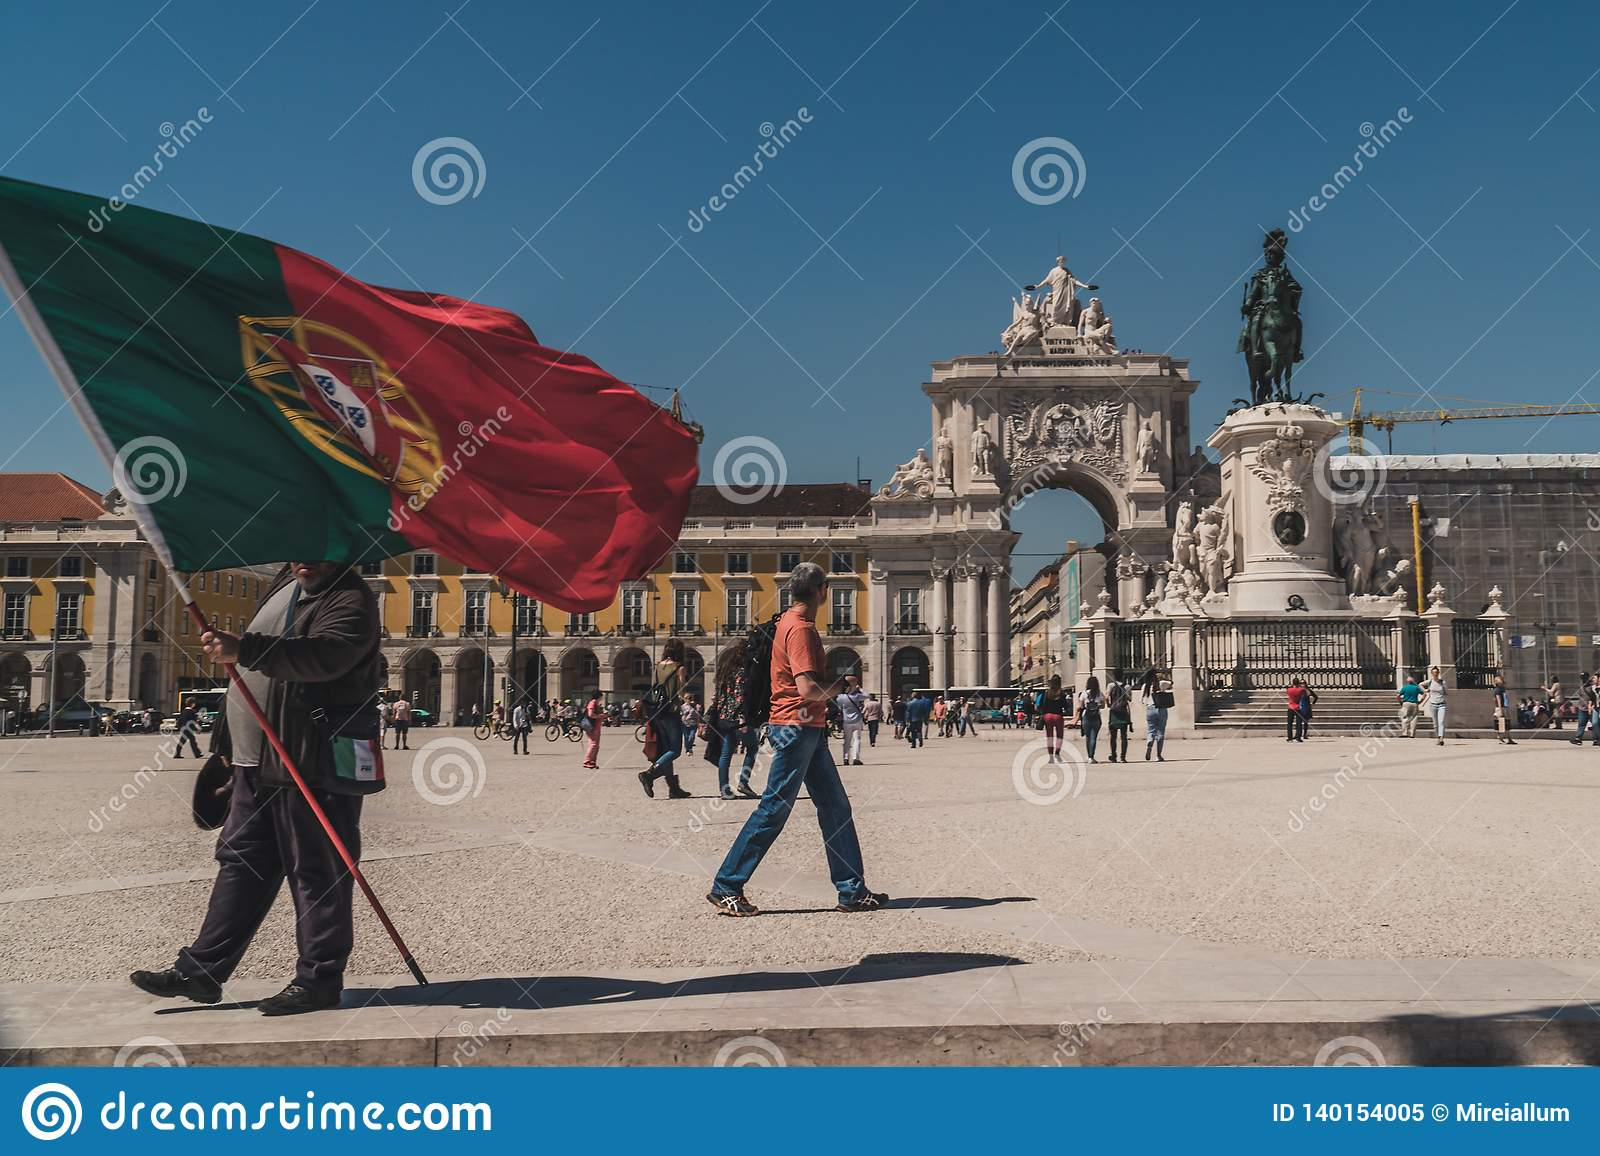 Someone holds a giant flag of Portugal on the Praça do Comércio Commerce Square in downtown Lisbon.